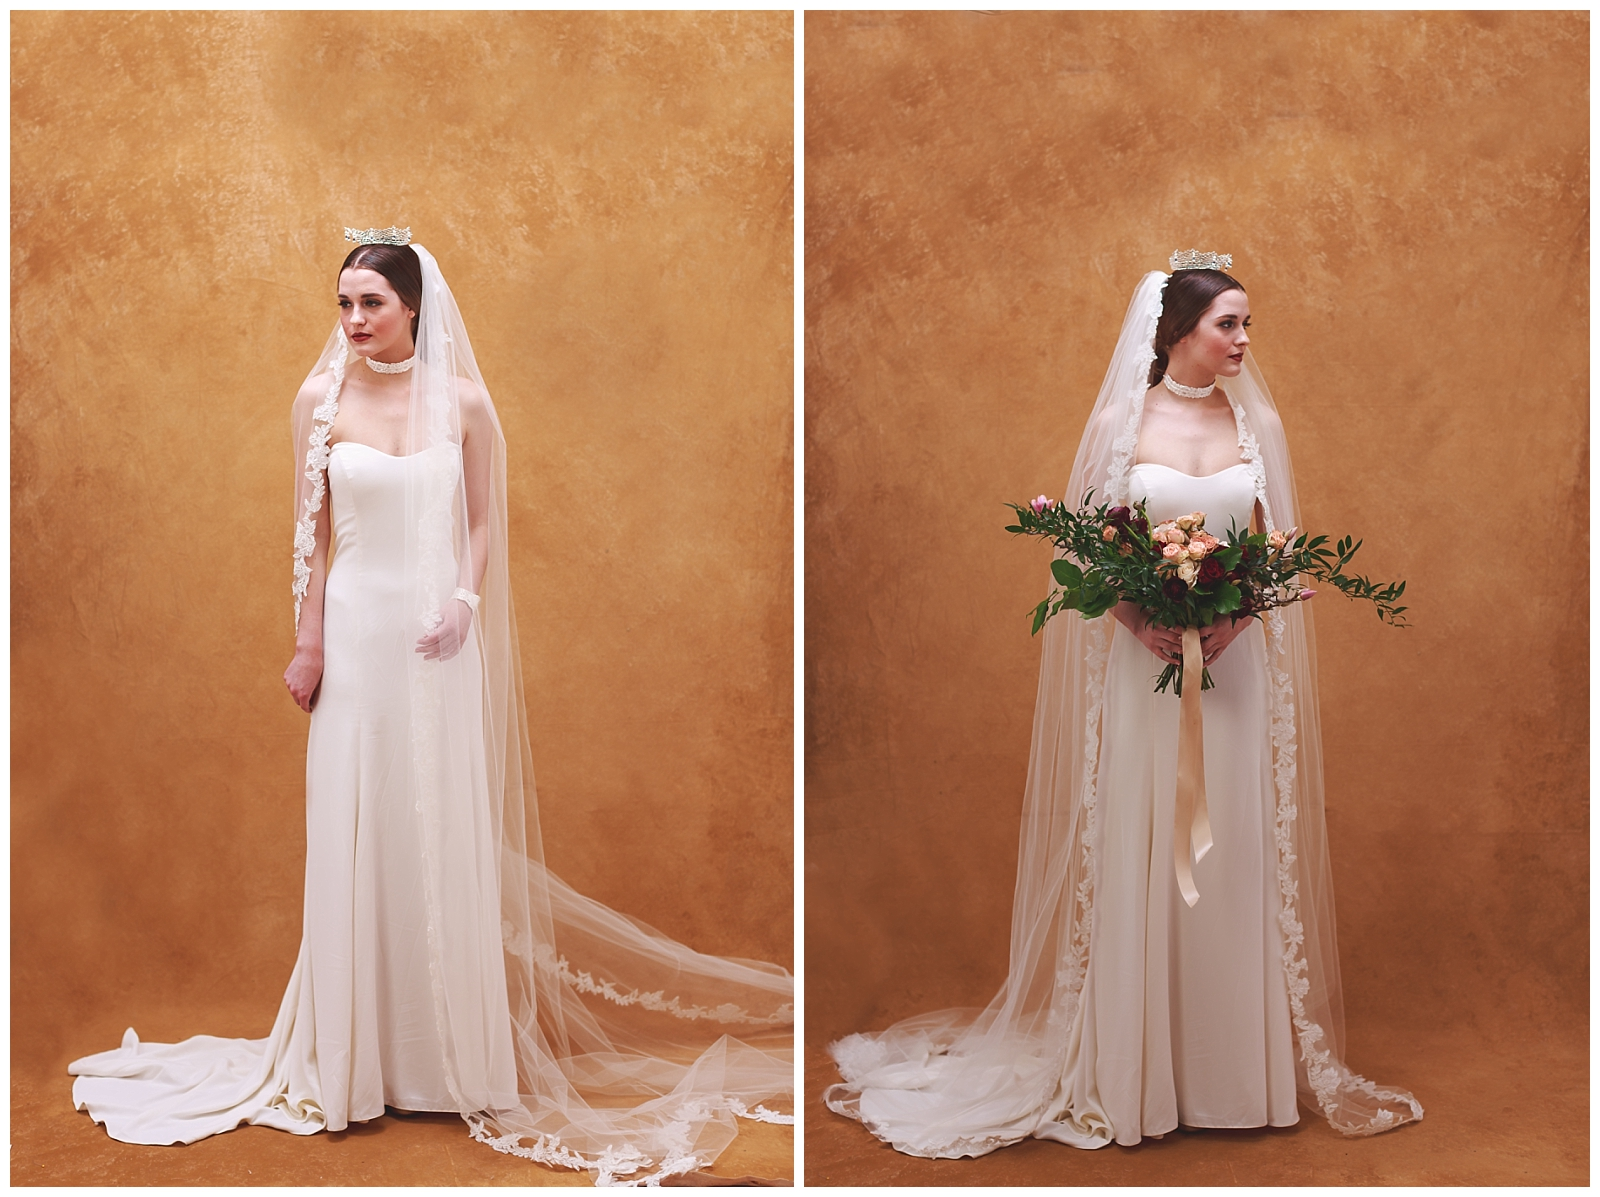 Bridal-Portraits-Inspiration-Epiphany-Gown-AGS-Photo-Art.jpg